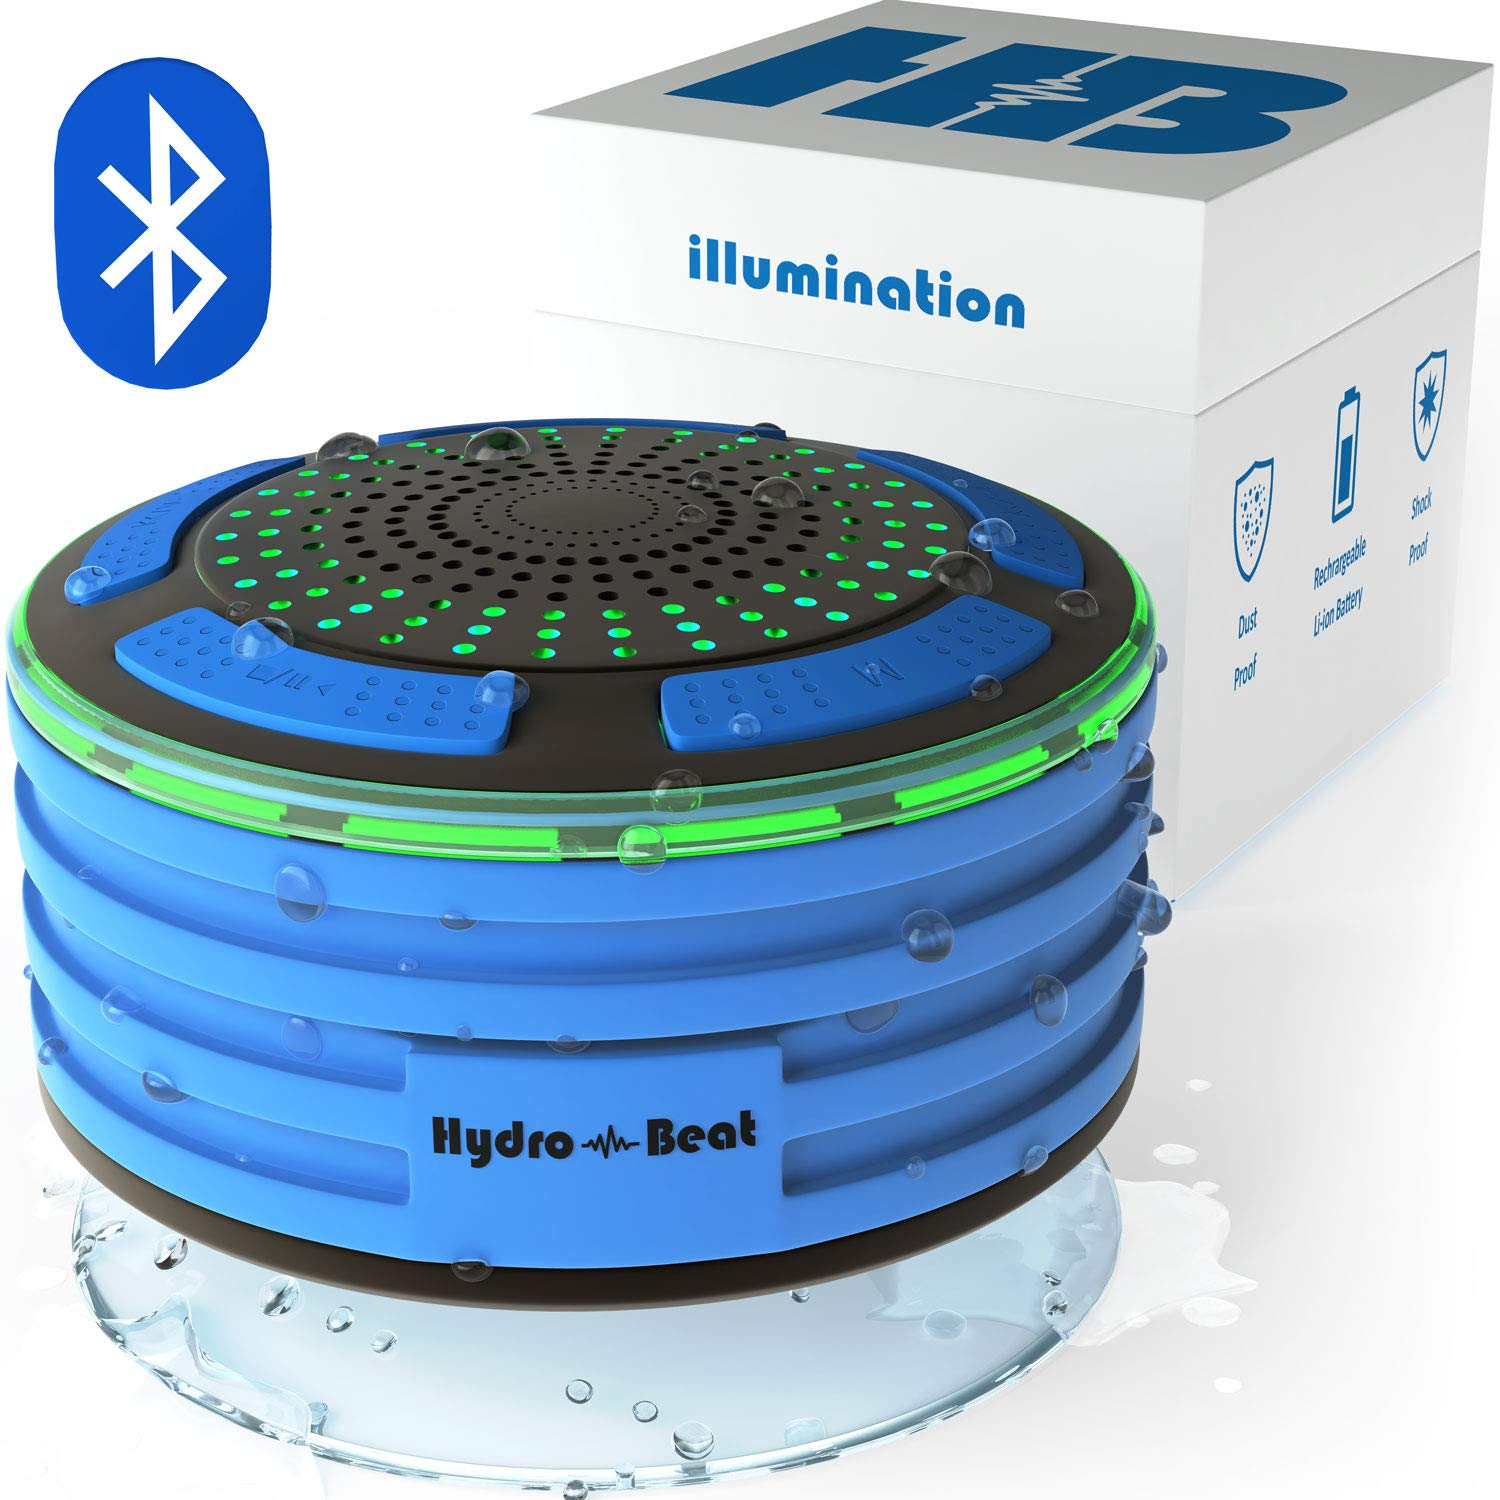 Bluetooth Portable Waterproof Shower Radio - HB Illumination - Shockproof, Dustproof Wireless Shower Radio with Suction Cup, Perfect for Pool, Shower, Boat, Beach, HOT Tub, Outdoors, Indoors by Hydro-Beat